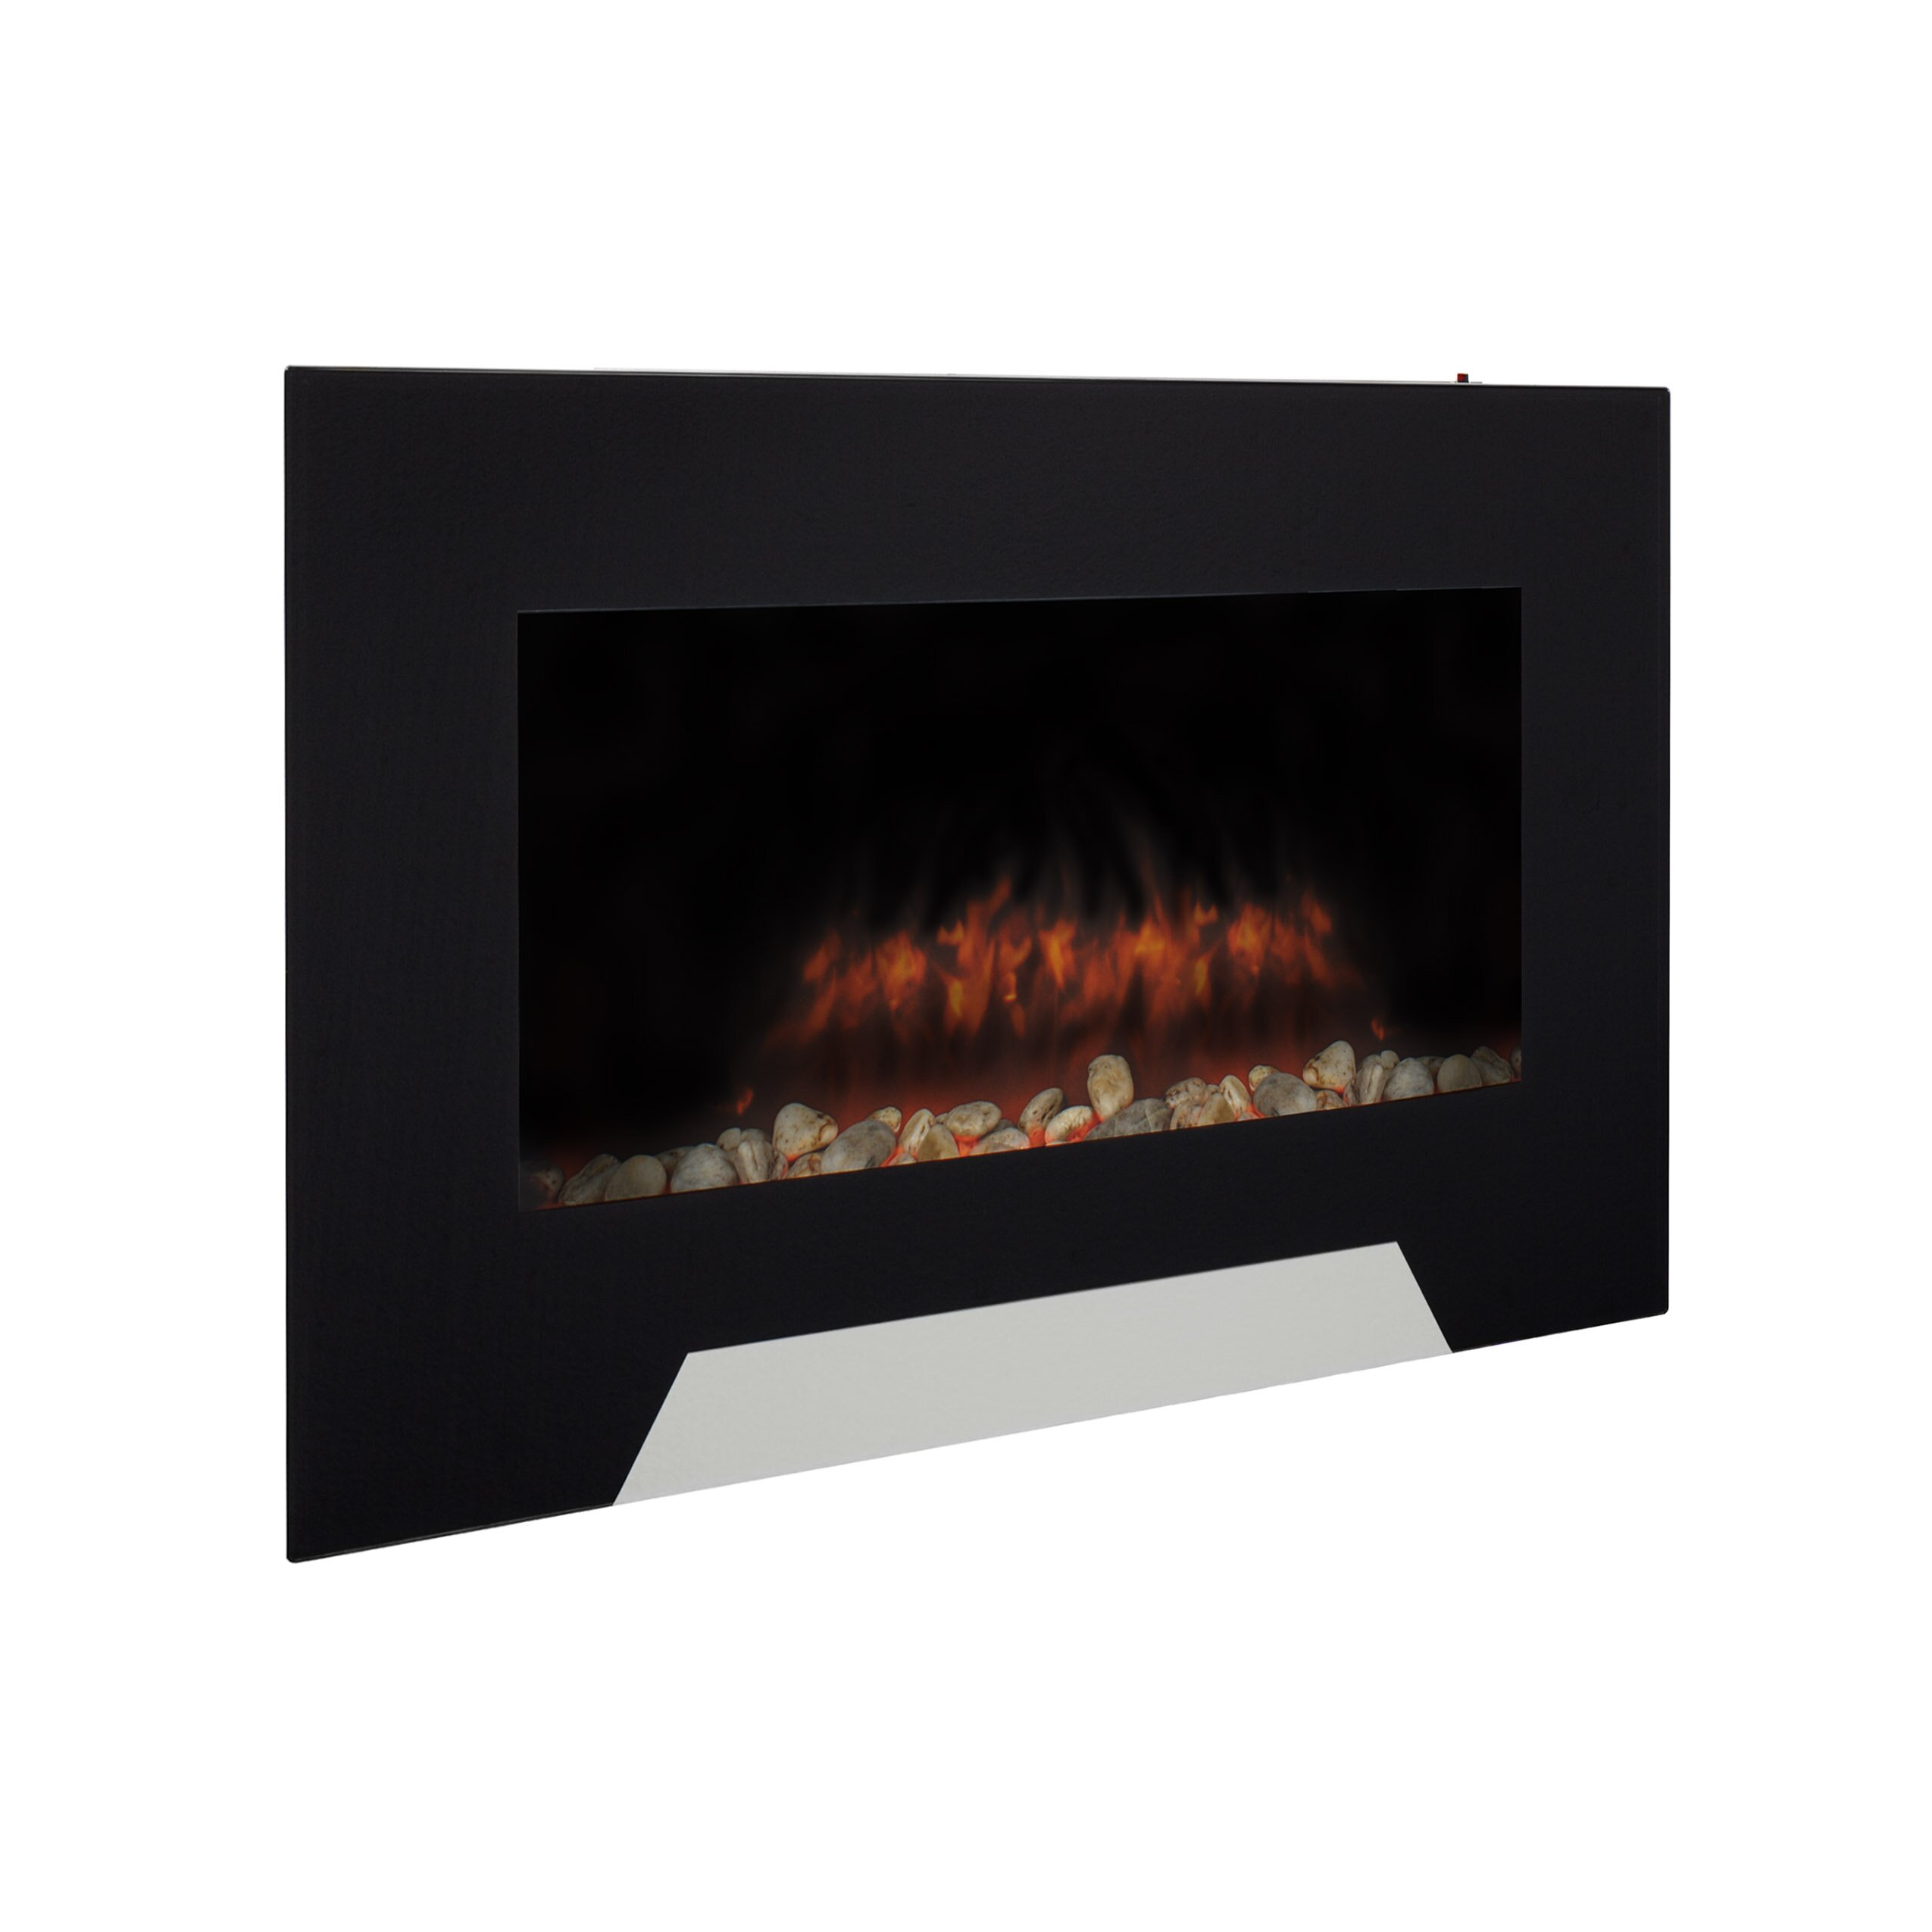 Corliving wall mount electric fireplace reviews wayfair for 24 wall mount electric fireplace